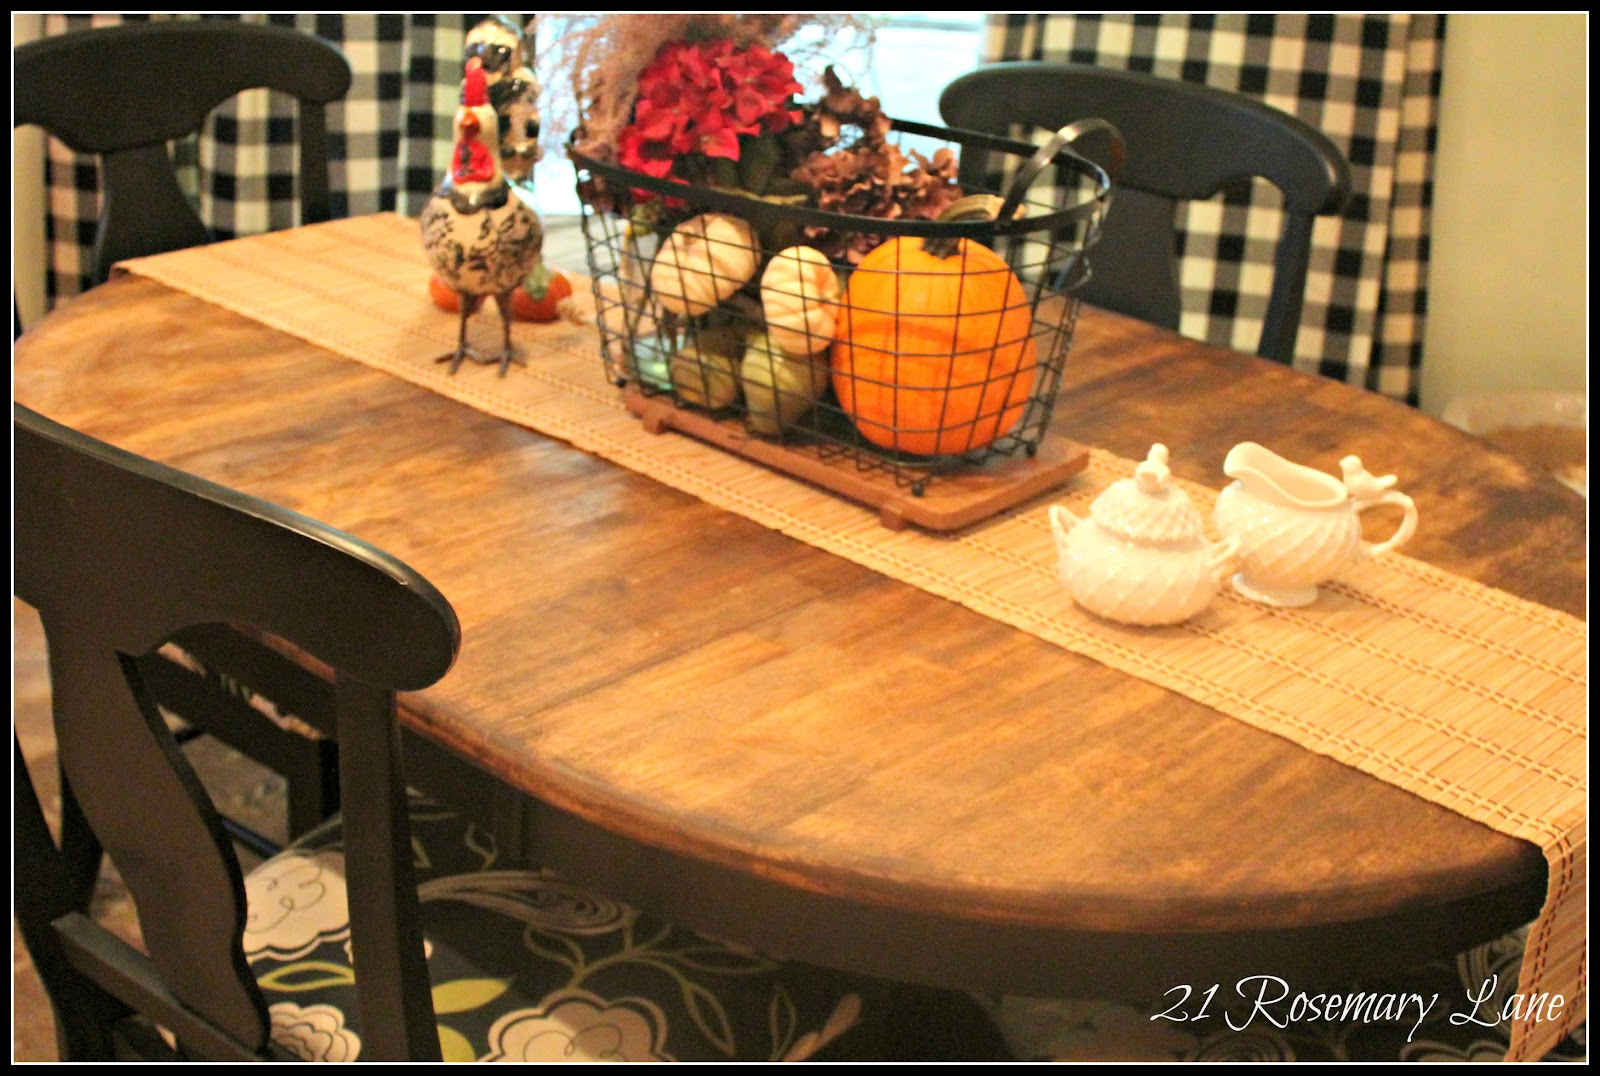 21 rosemary lane treasured roosters on my refinished tabletop an autumn tablescape - Refinished kitchen table ...